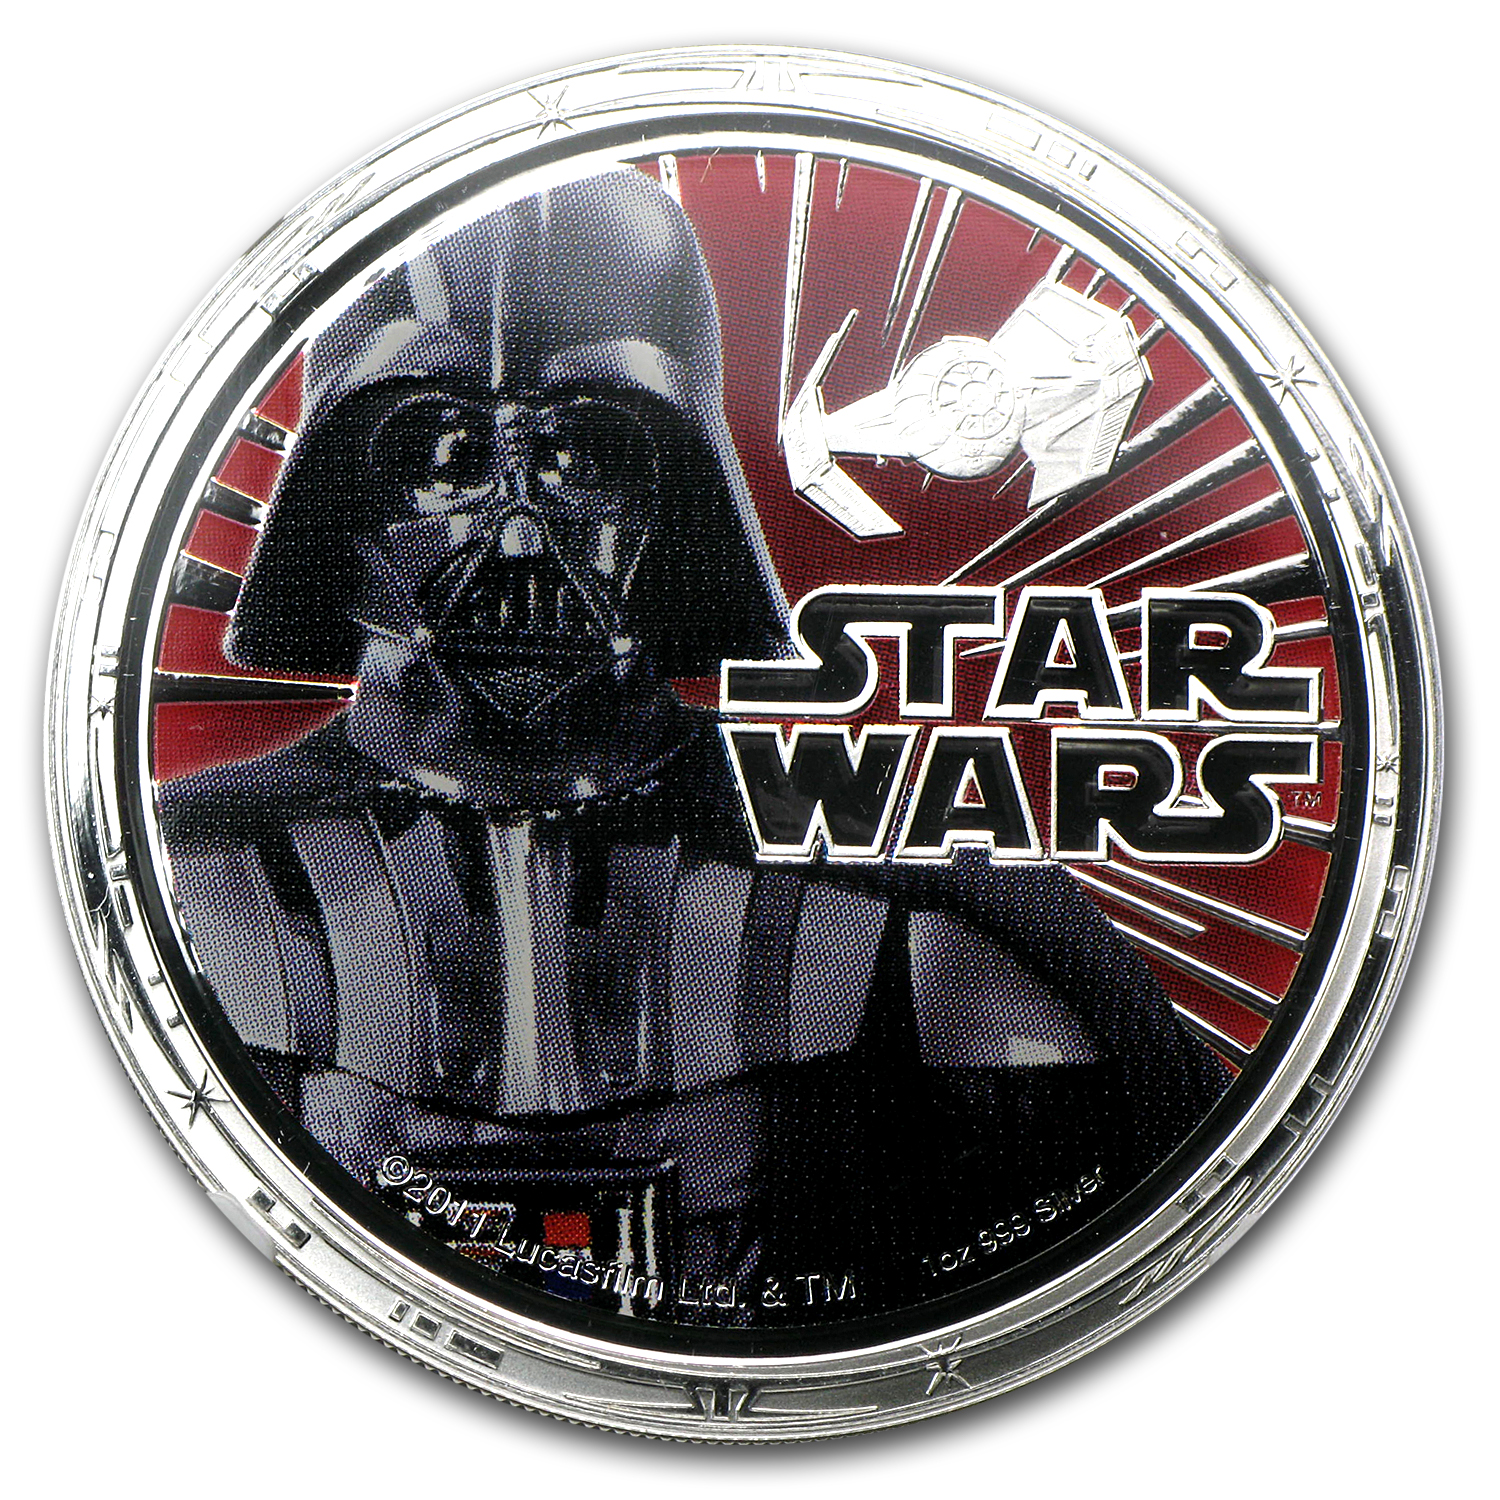 2011 Star Wars 1oz Silver PF-70 UCAM NGC - Darth Vader